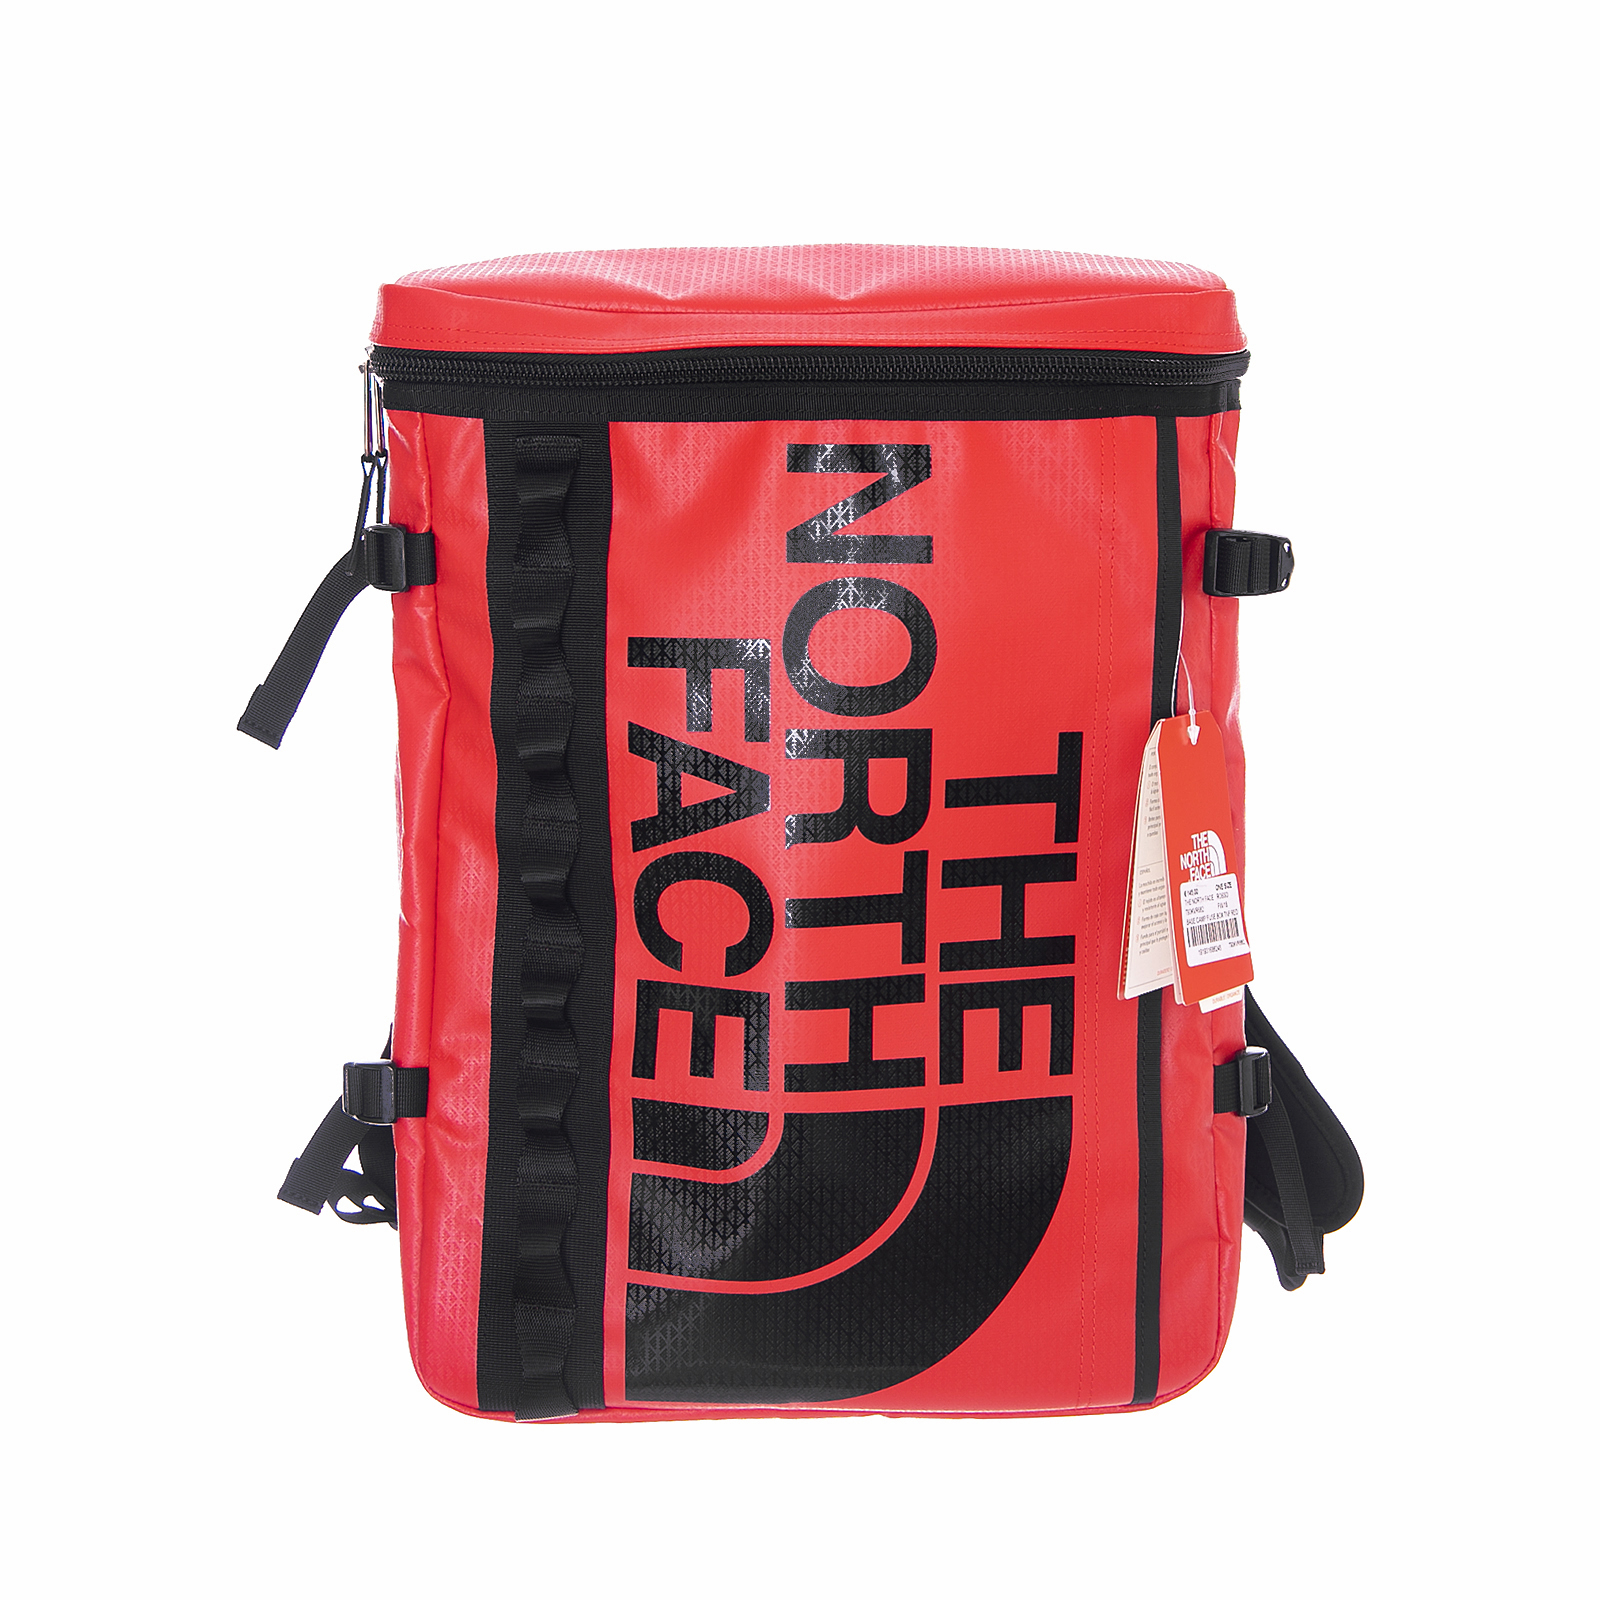 Base 145 North Tnf Eur The Zaini Camp Red Rosso Fuse 00 Face Box qtddwPC4x